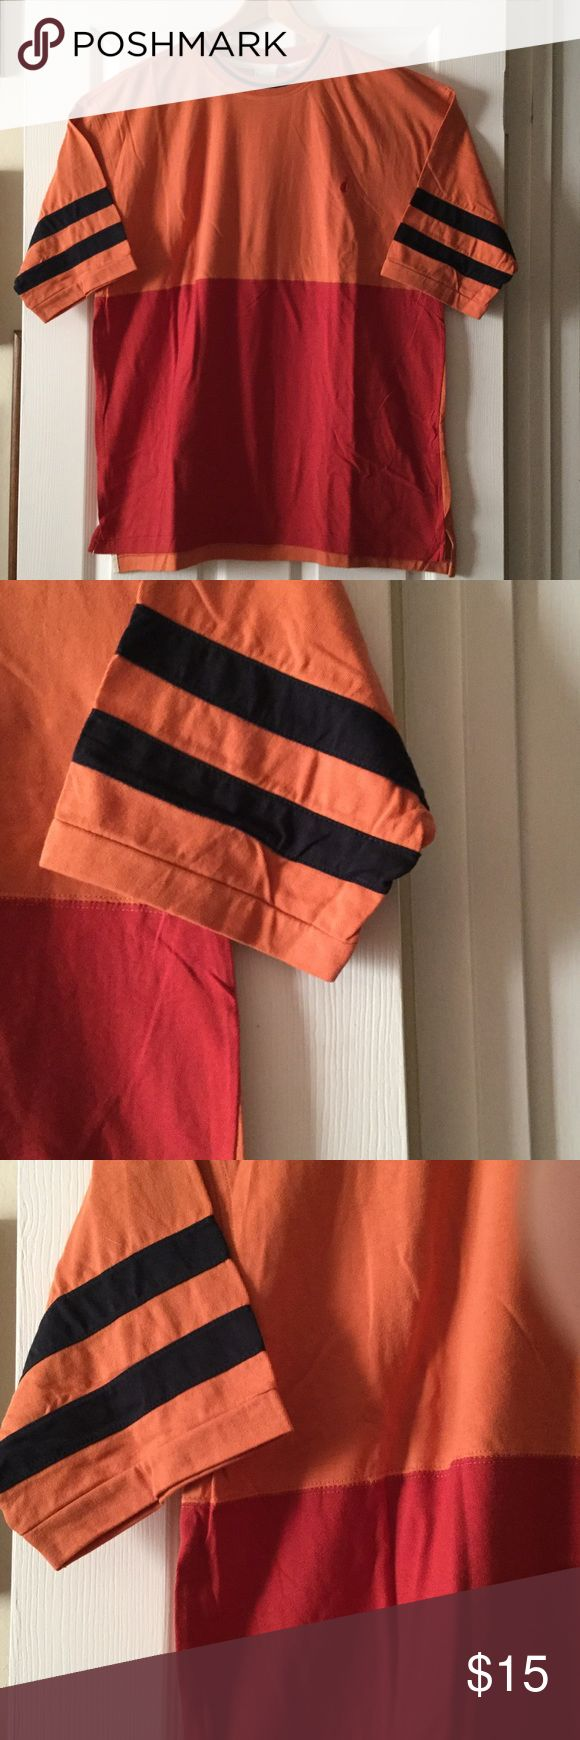 Short sleeve multi color t shirt Men's shirt sleeve crew neck t shirt, front of shirt is red and orange with navy blue bands on the sleeves, back is solid orange, hi low hem with side slits, new with no tags from a smoke free home jockey Shirts Tees - Short Sleeve